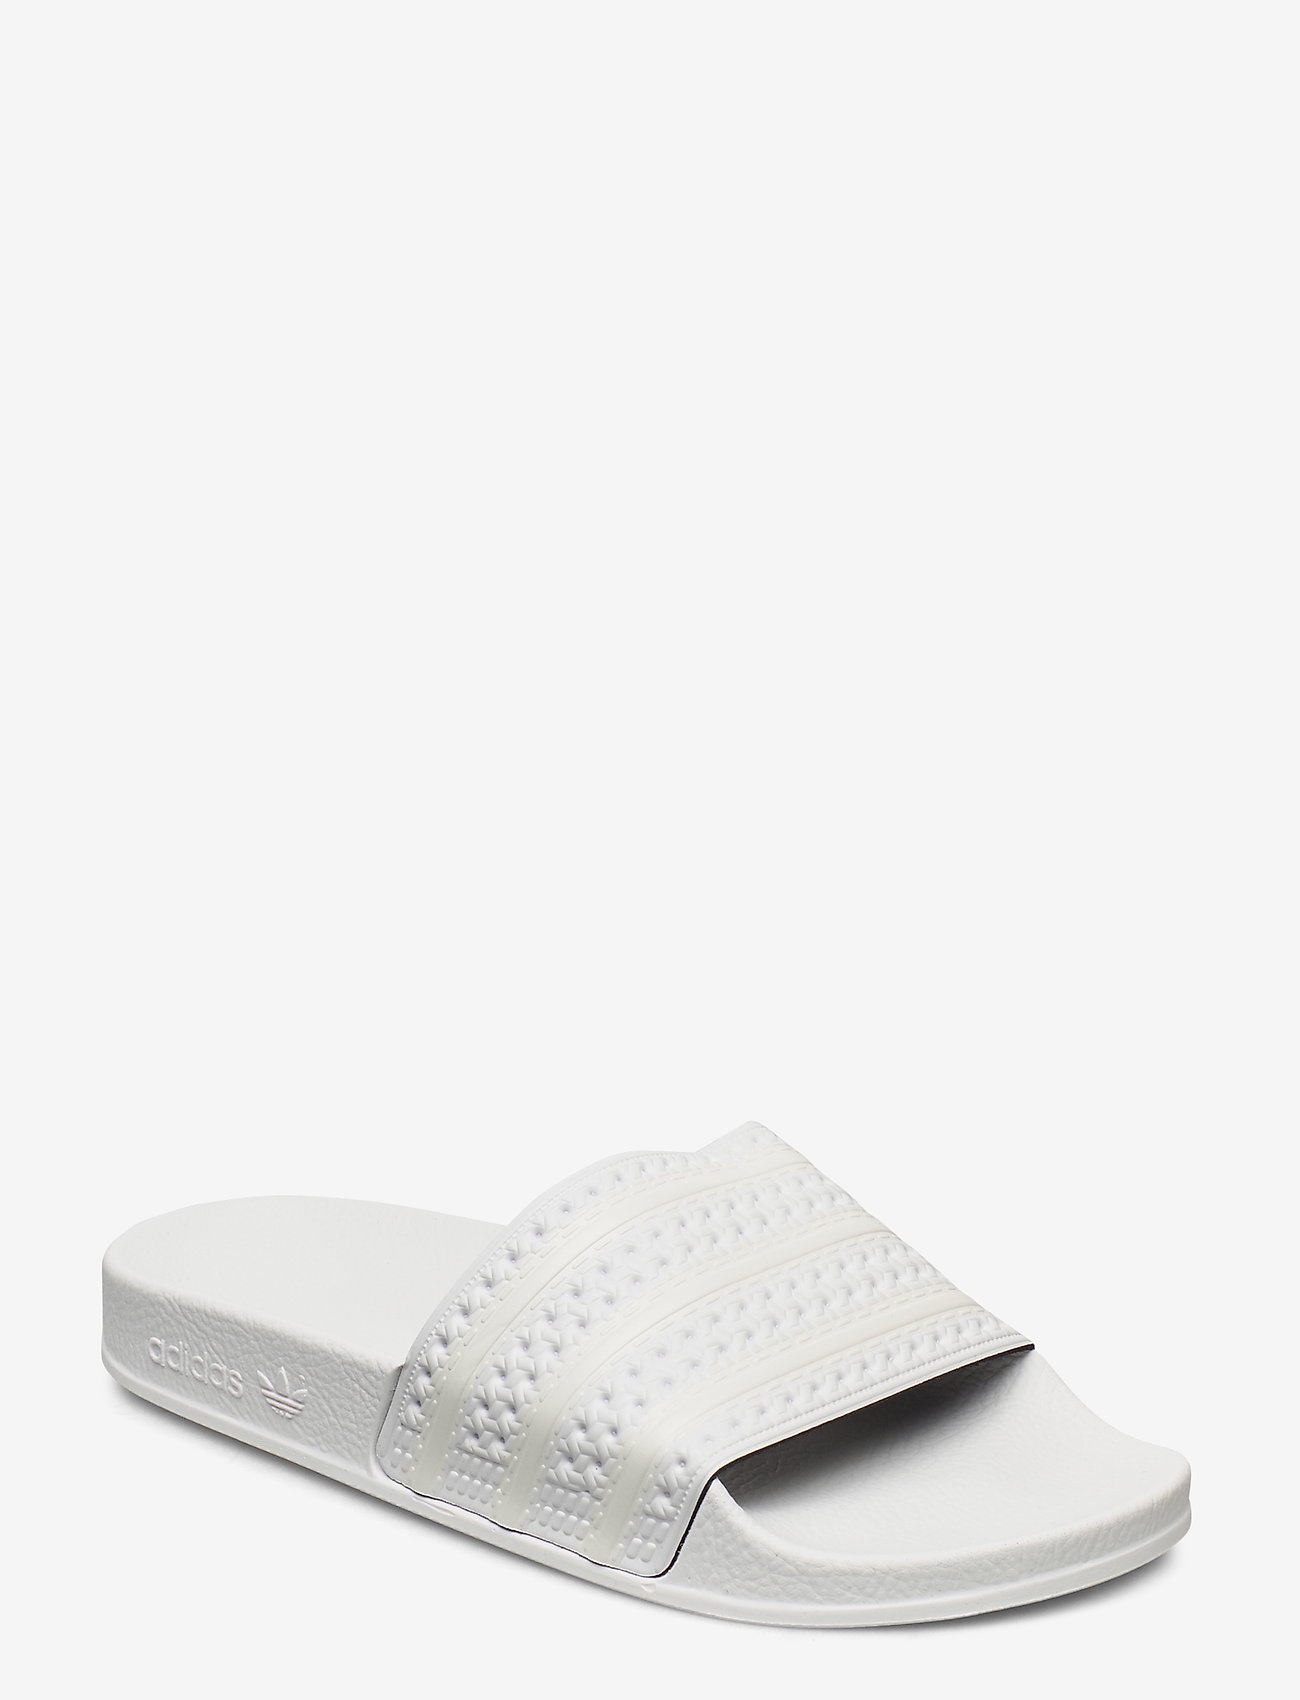 adidas Originals - ADILETTE W - sneakers - ftwwht/owhite/ftwwht - 0